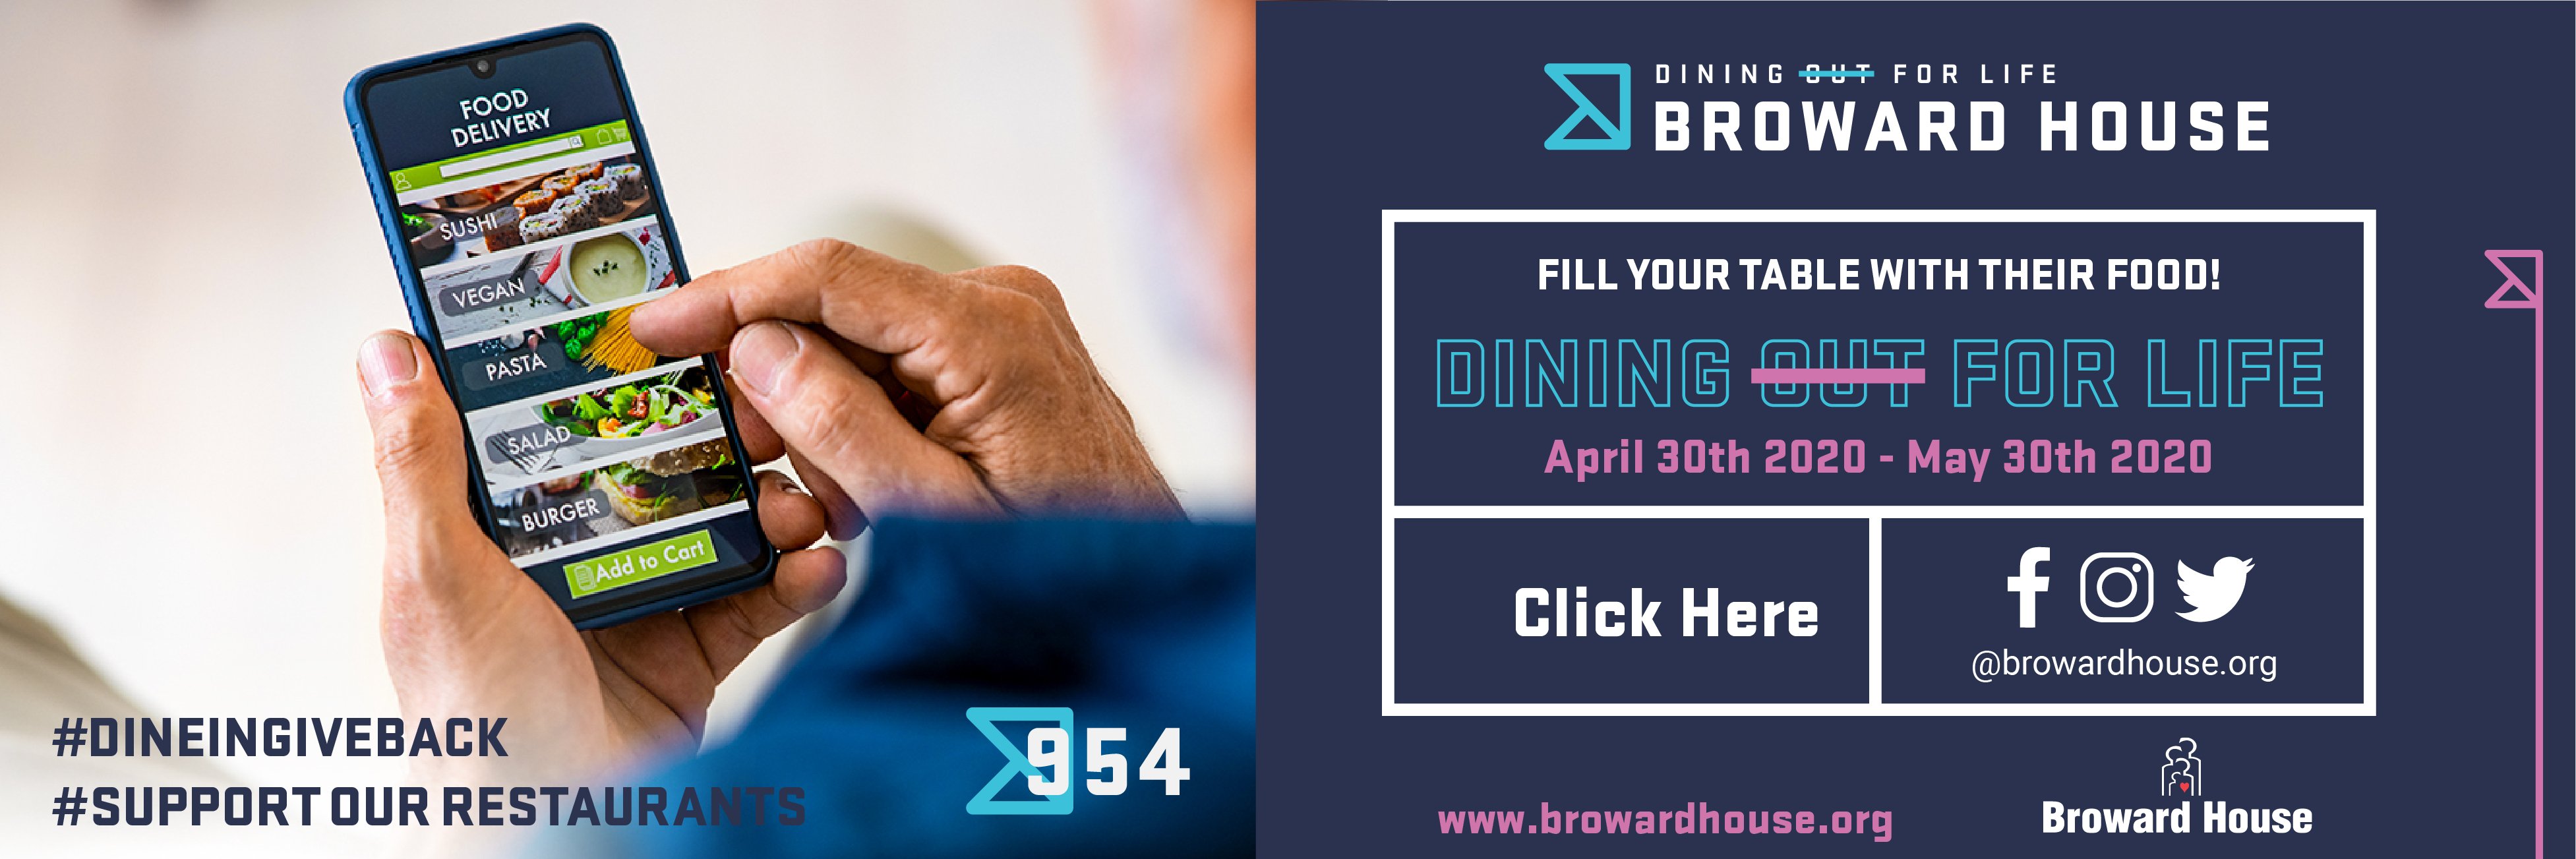 Dining_in_For_Life_-_Broward_House_-_Online_Event_2020_Web_Banner_Cover_Photo-01